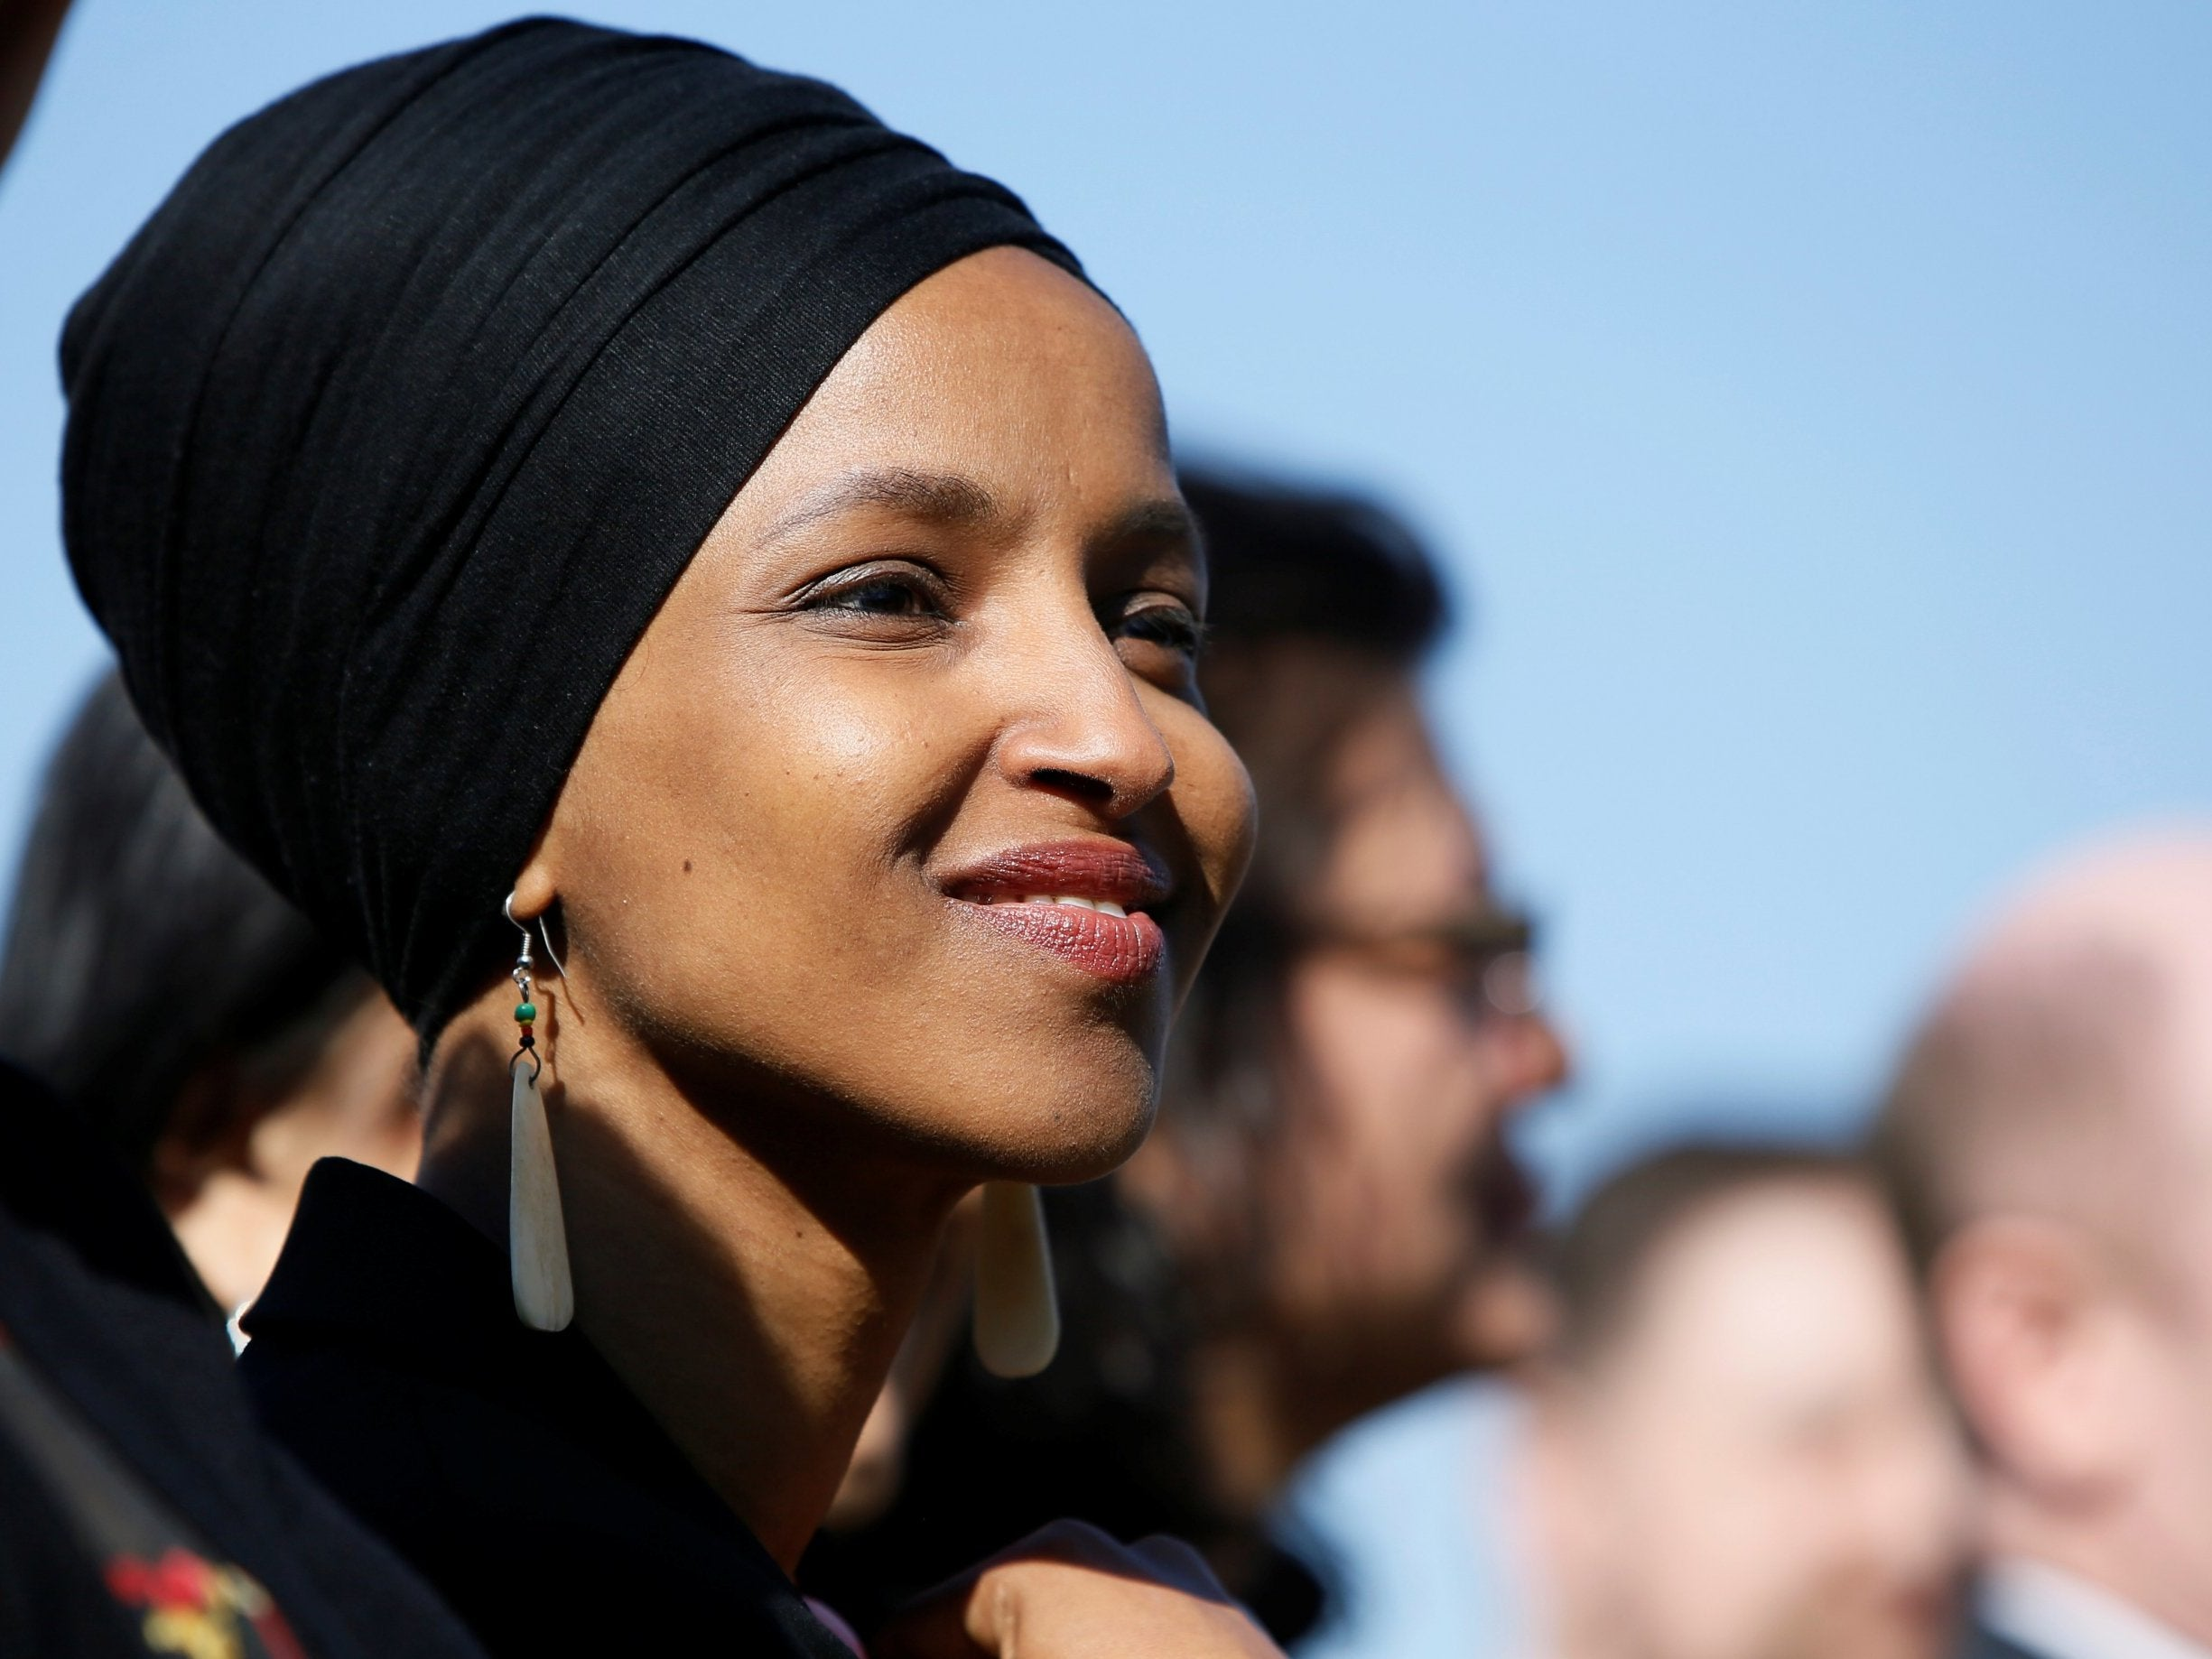 ilhan omar  muslim congresswoman says she has faced